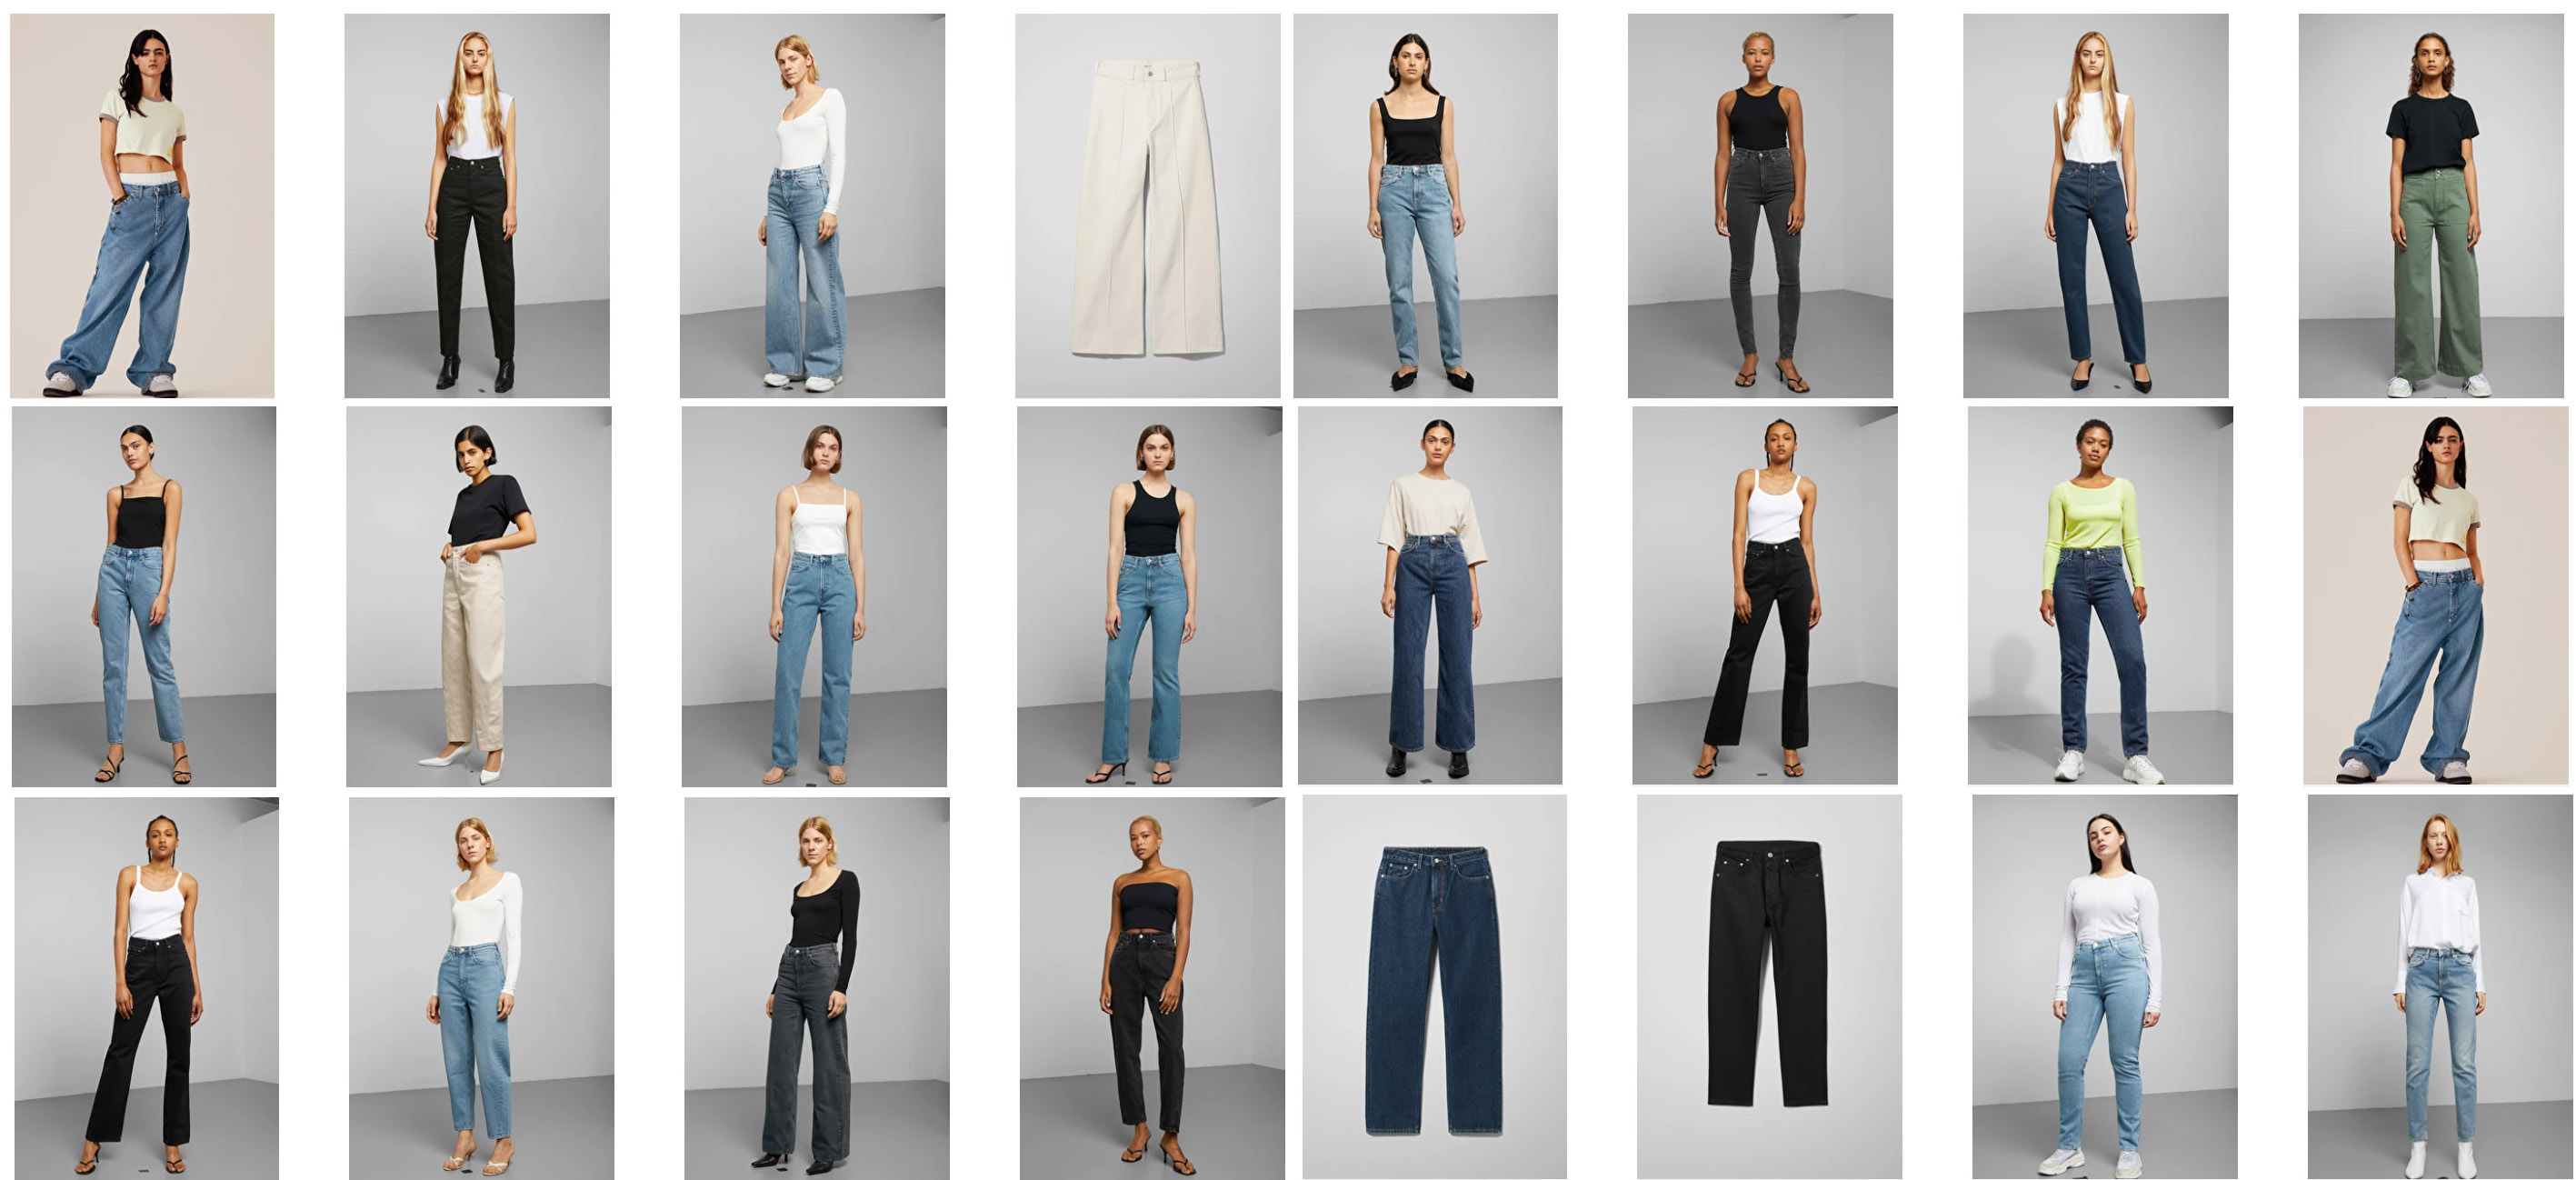 Some of the many denim styles available at H&M's Weekday stores.